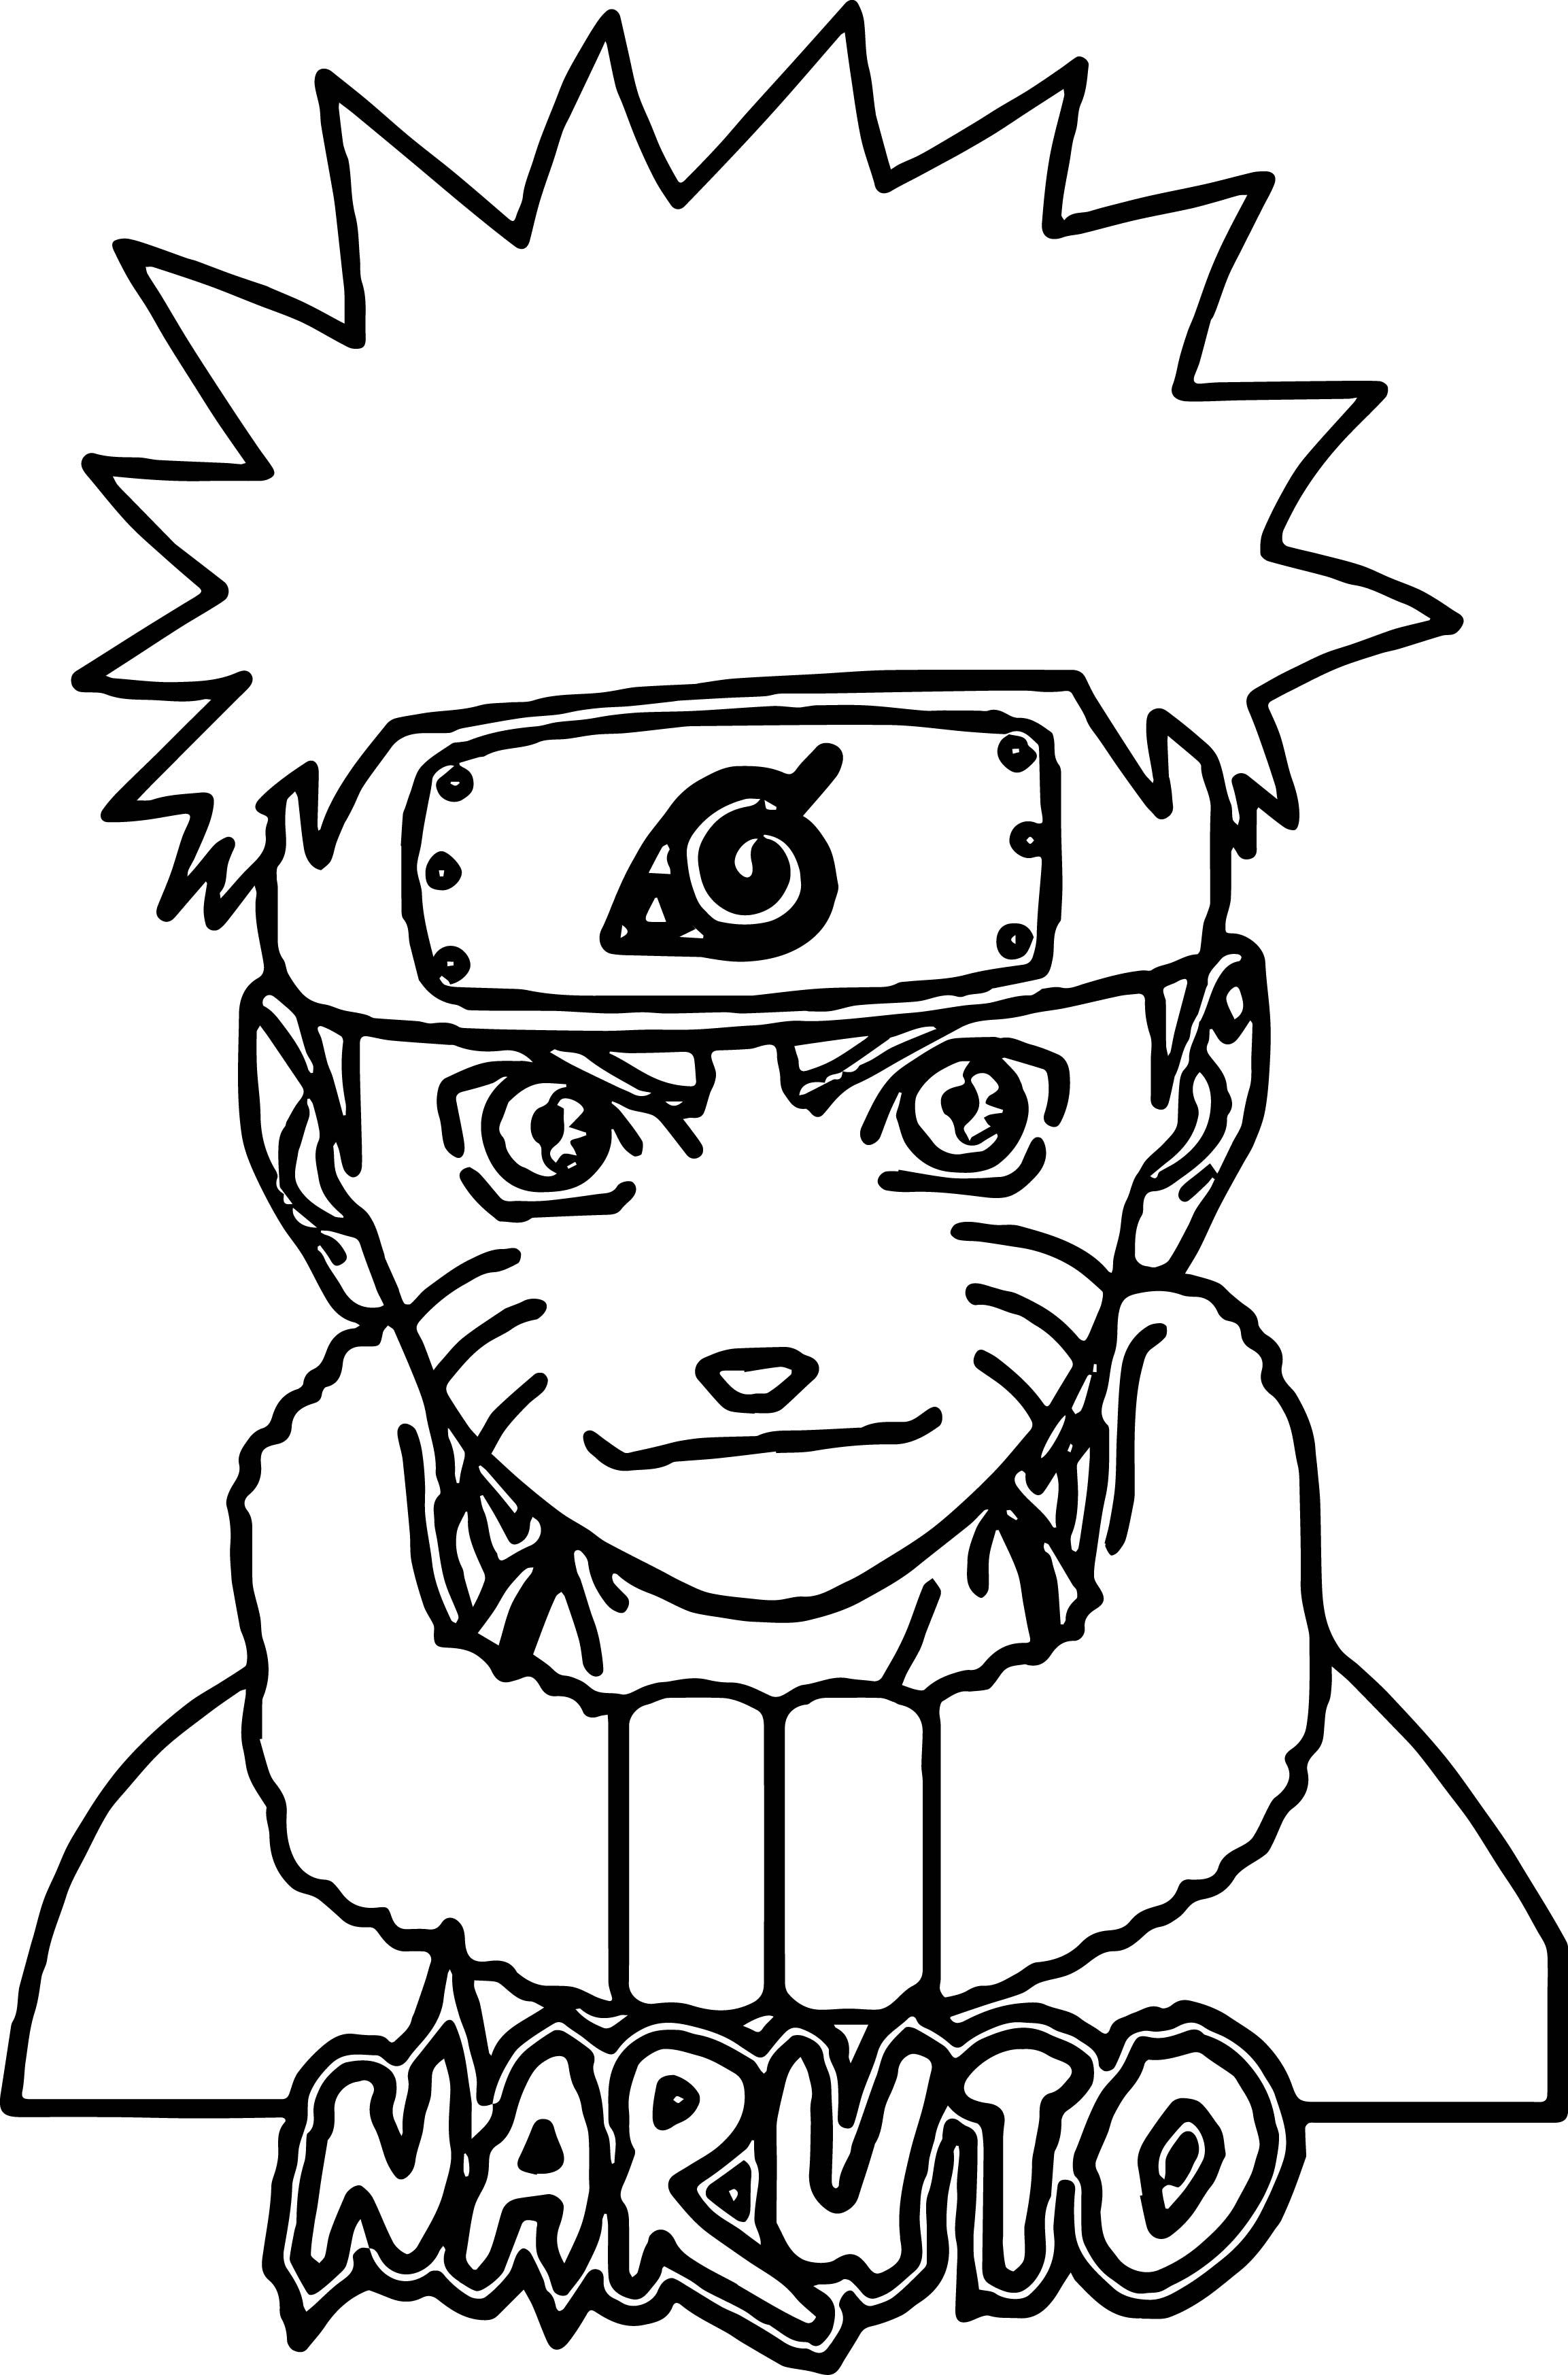 Nice Anime Naruto Coloring Page Cute Coloring Pages Coloring Pages Anime Naruto